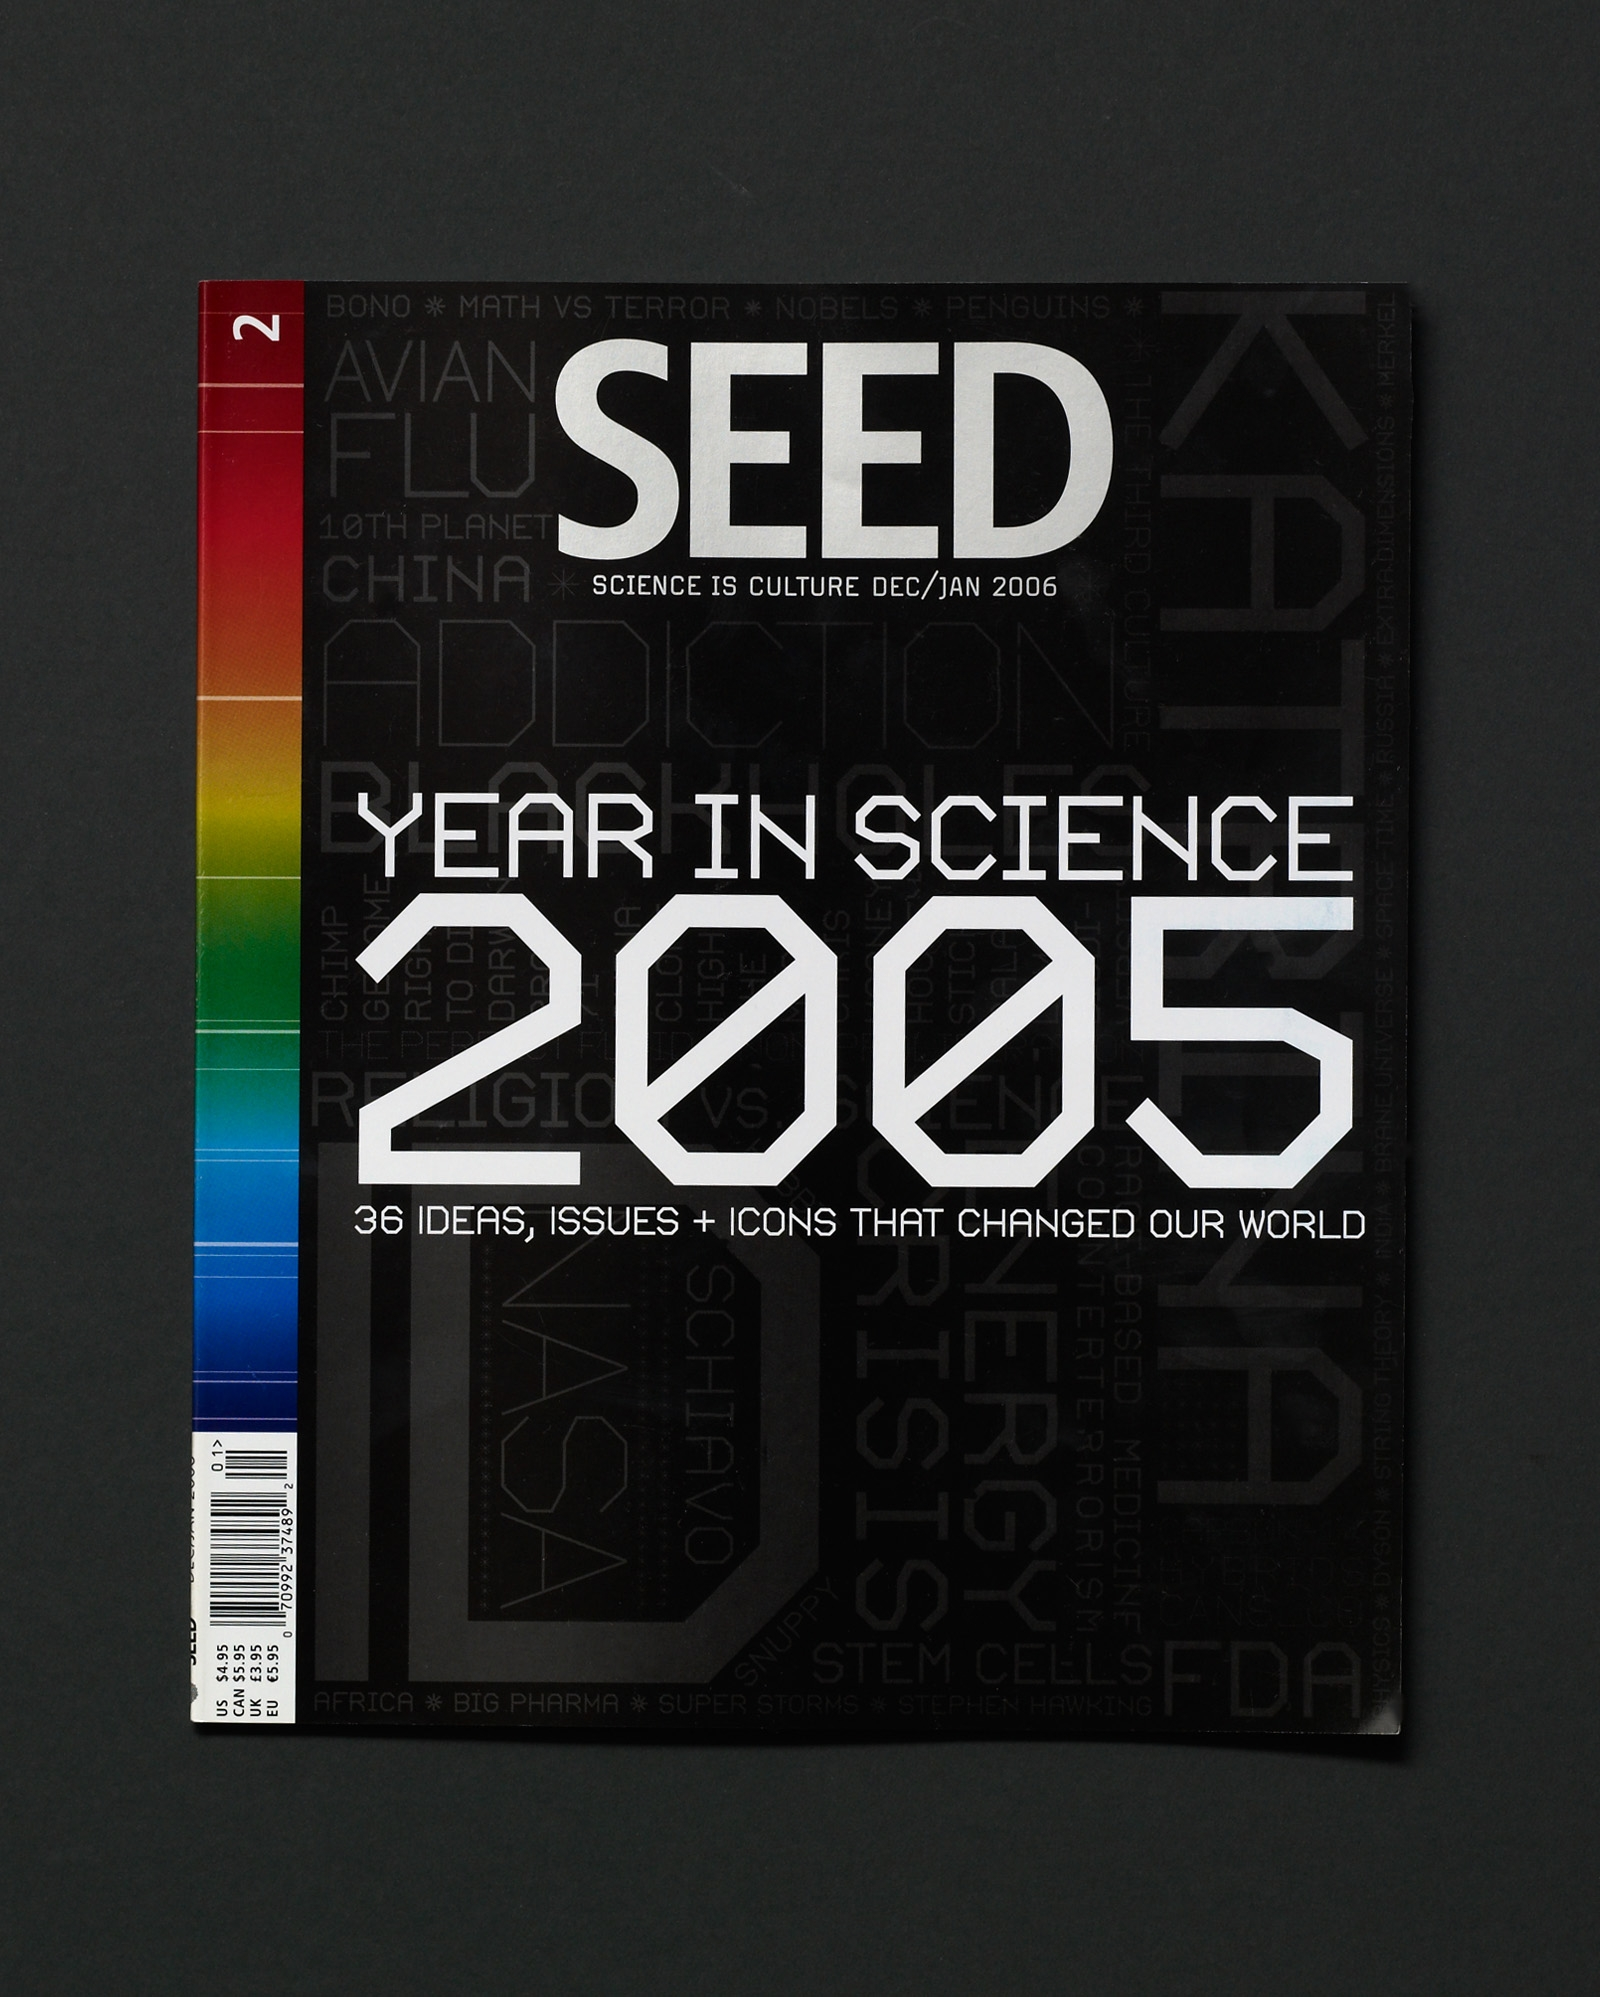 SEED magazine year in science 2005